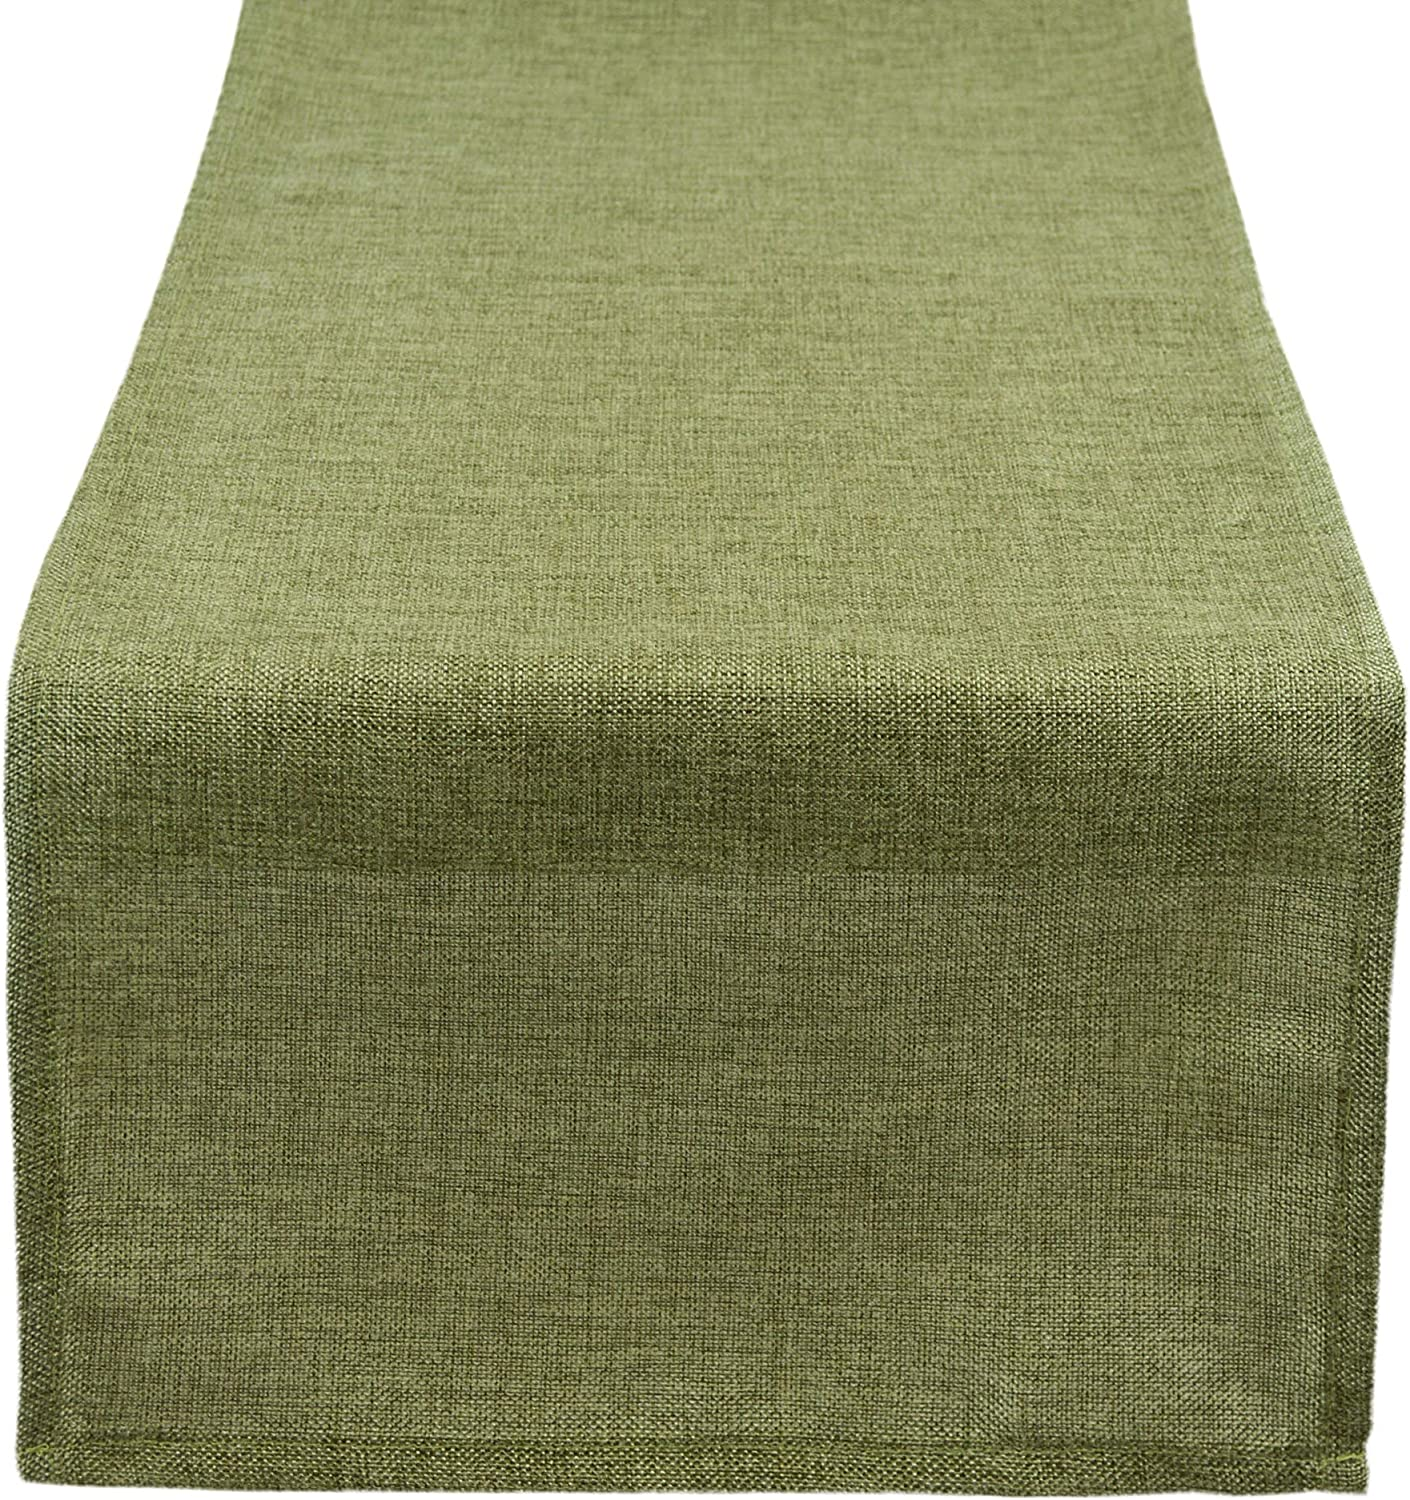 Aiking Home (Pack of 1) Natural Faux Linen Unlined Table Runner, Moss-Size 12''x62'' -Ideal for Wedding, Baby Shower, Party Decor, Thanksgiving, Christmas or Special Event.